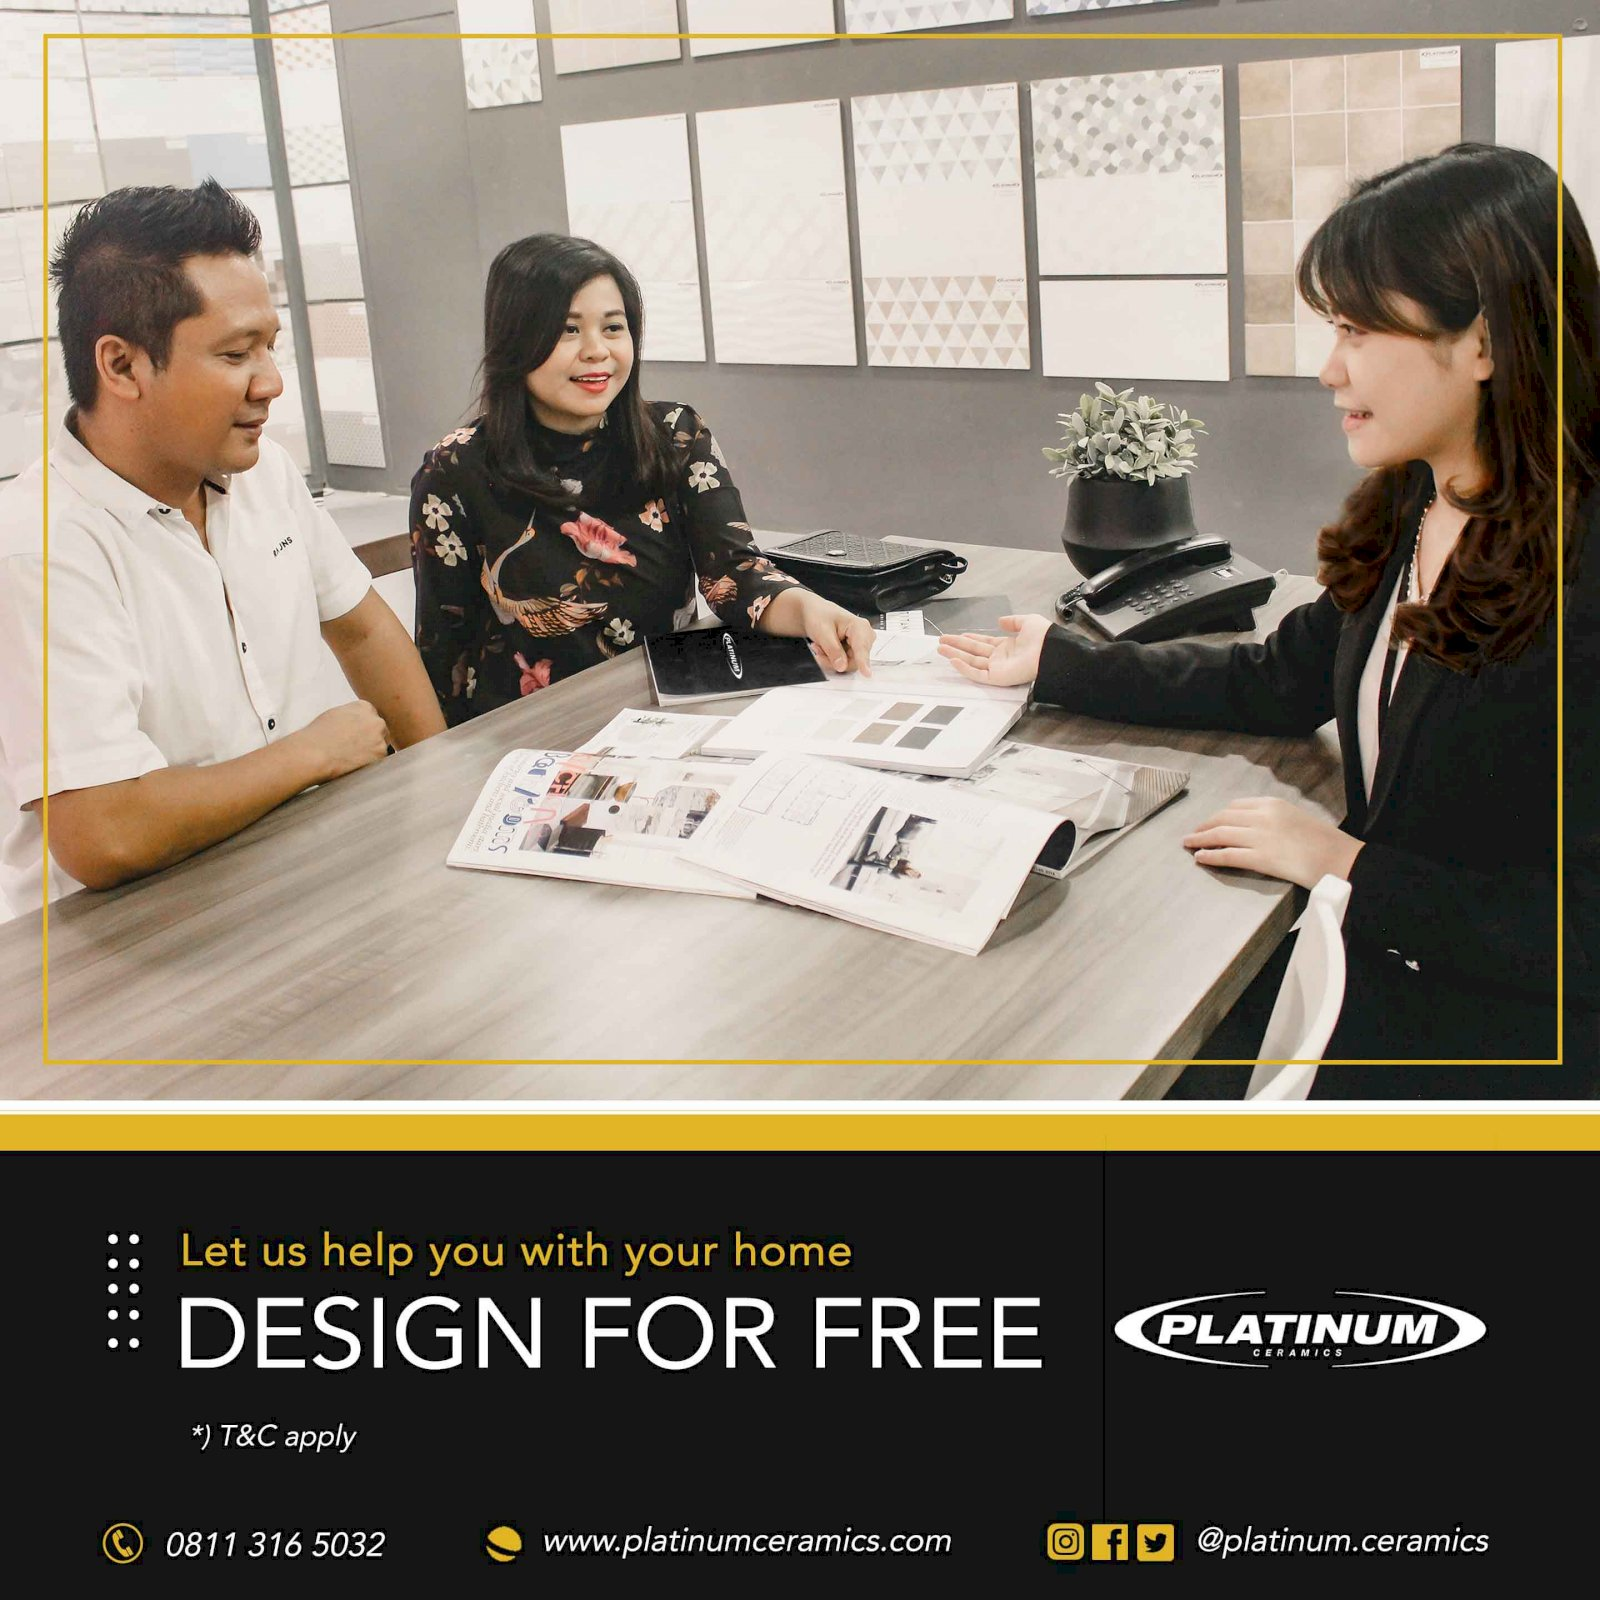 Design your home for free